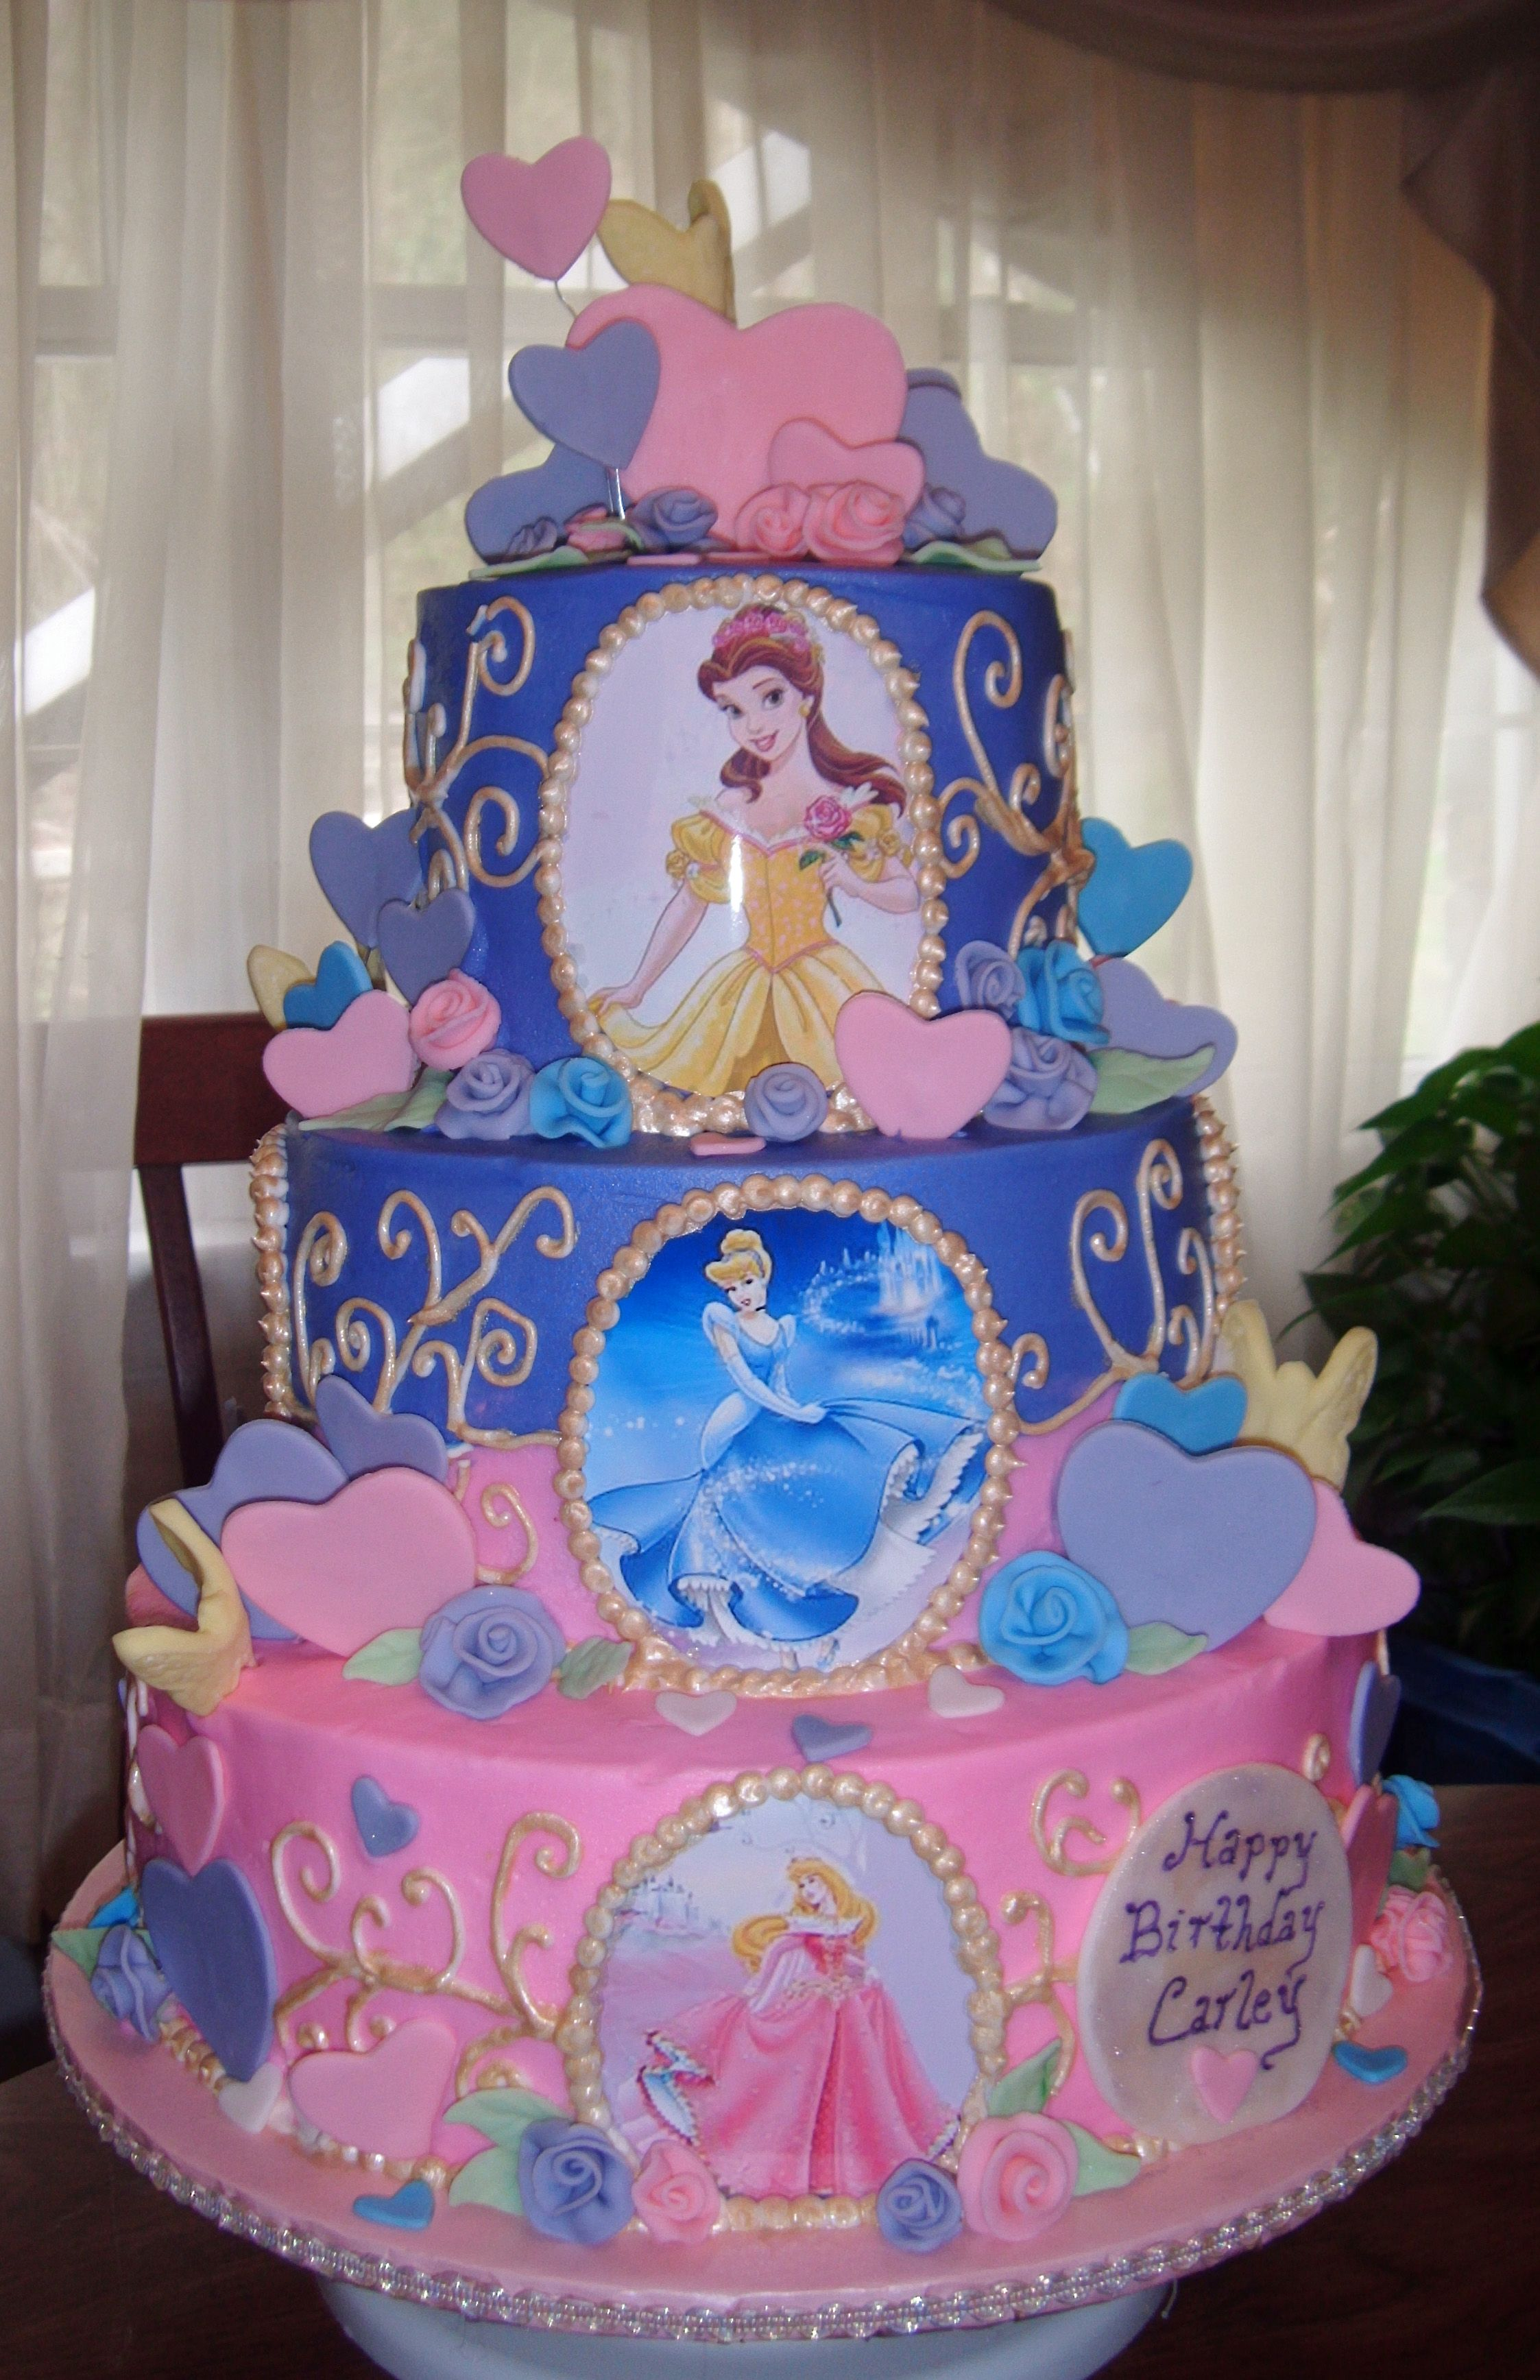 Childrens Birthday Cakes Disney Princesses Cake ok who can make